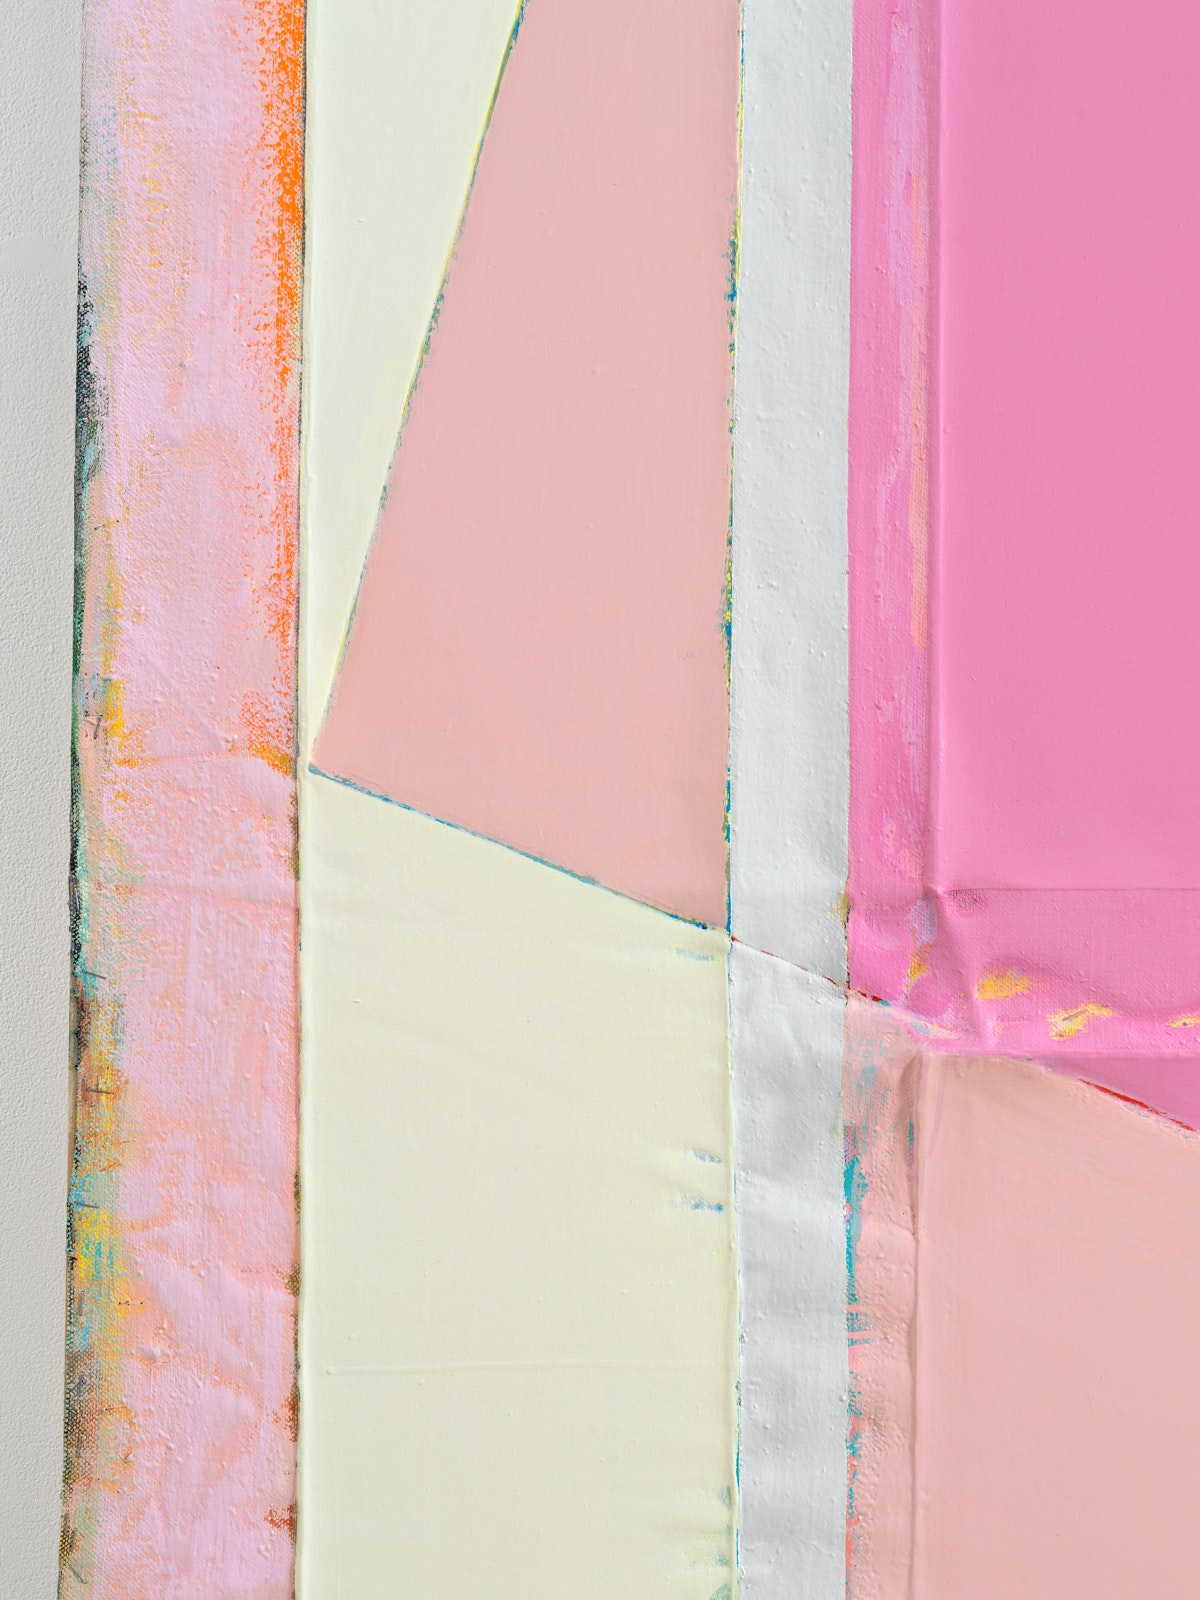 Julia Rommel, <em>41 First Dates </em>(detail), 2019. Oil on linen, 84 1/2 x 65 inches. Courtesy the artist and Bureau, New York. Photo: Dario Lasagni.